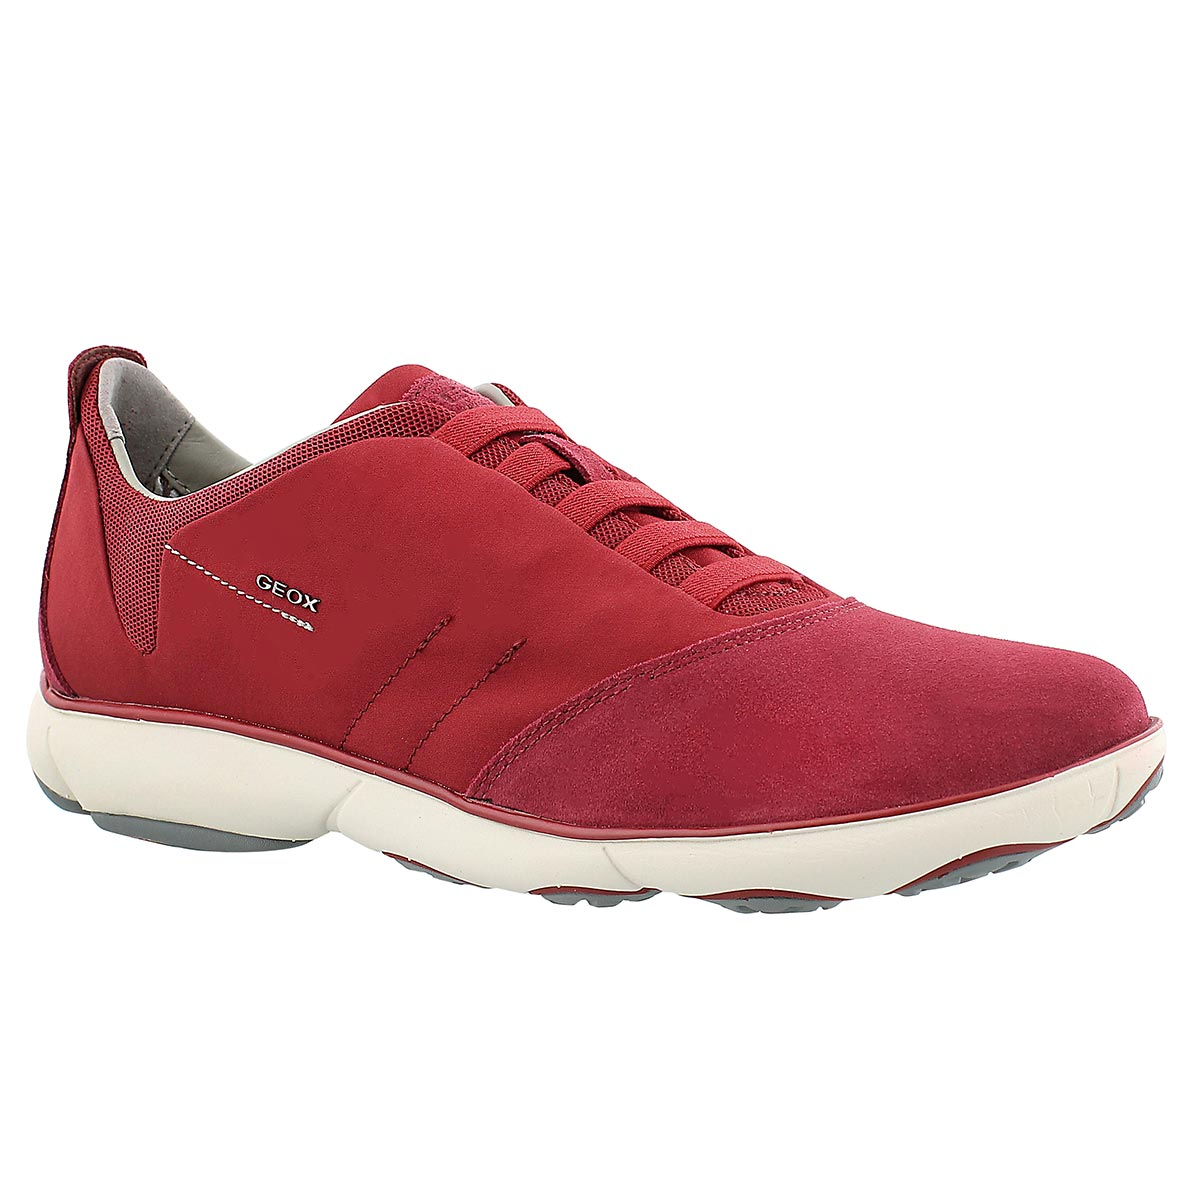 Men's NEBULA red lace up running shoes